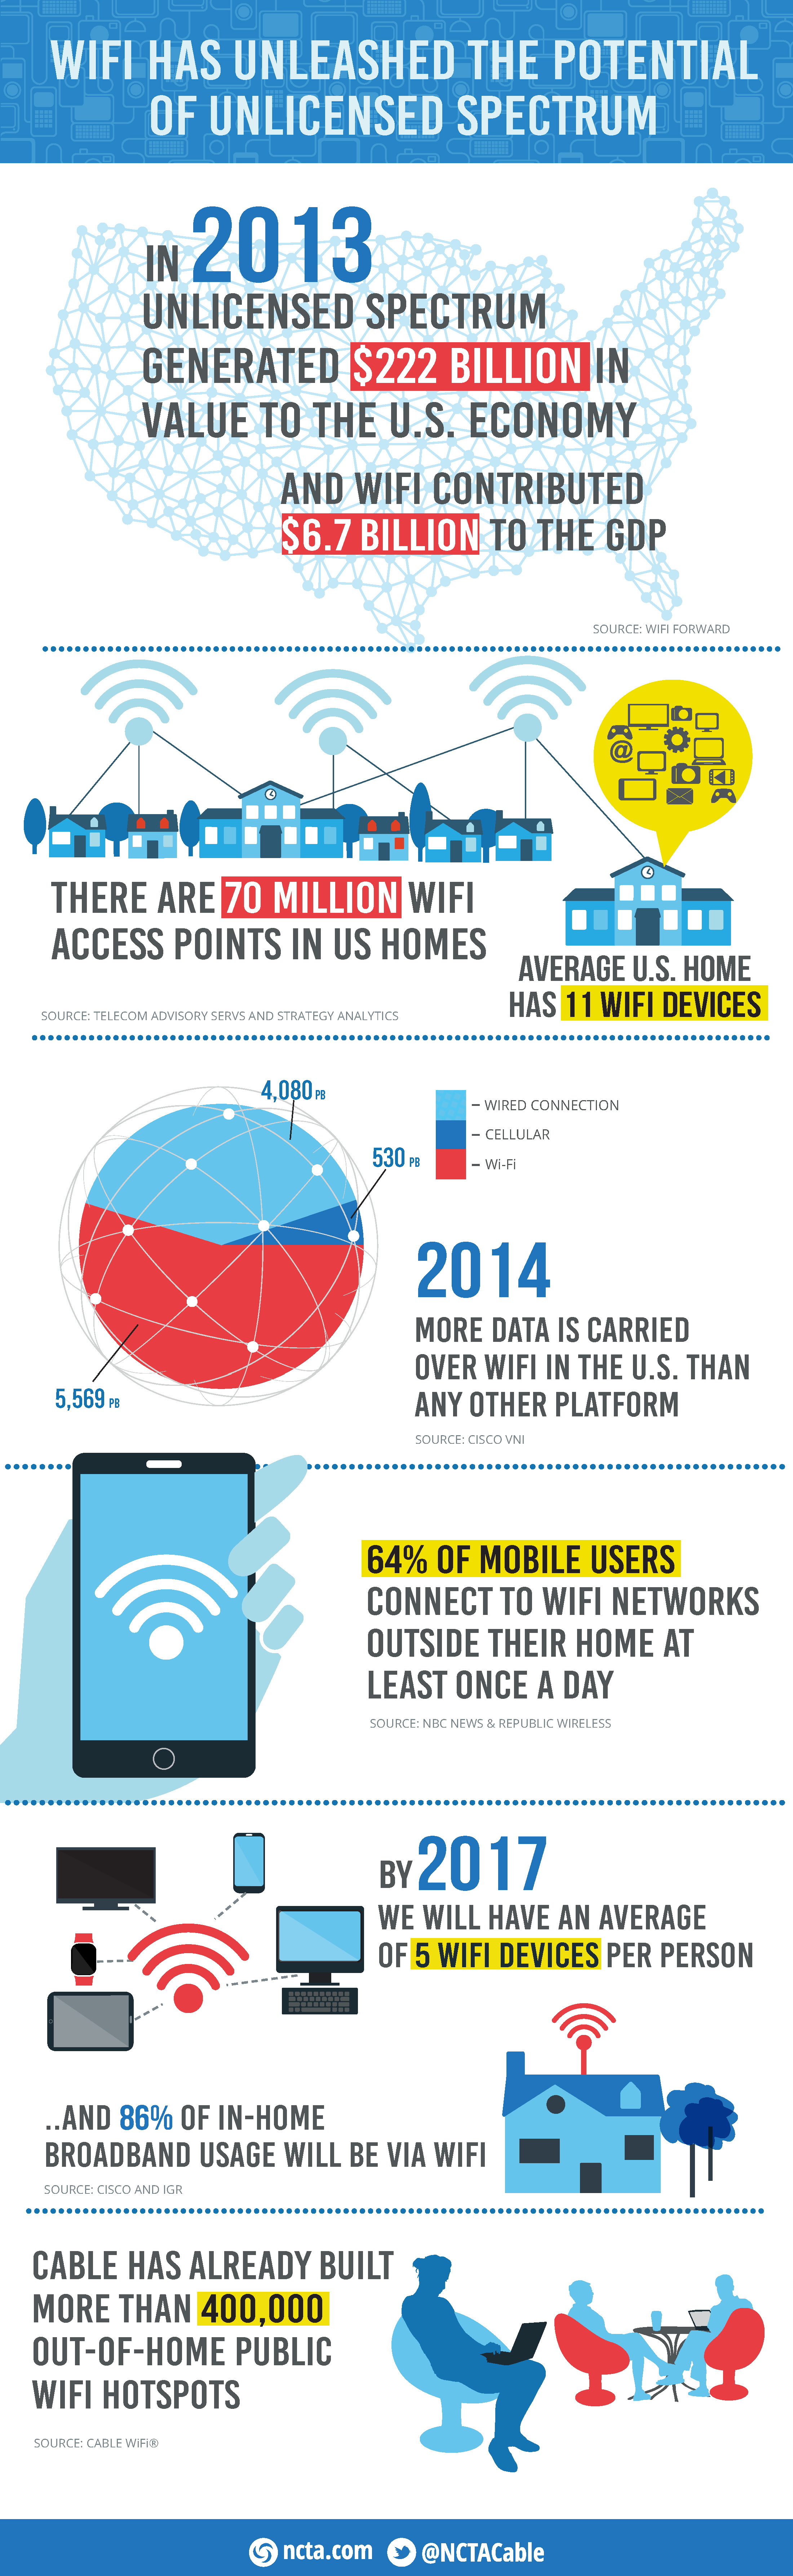 Wi-Fi Has Unleashed the Potential of Unlicensed Spectrum ...